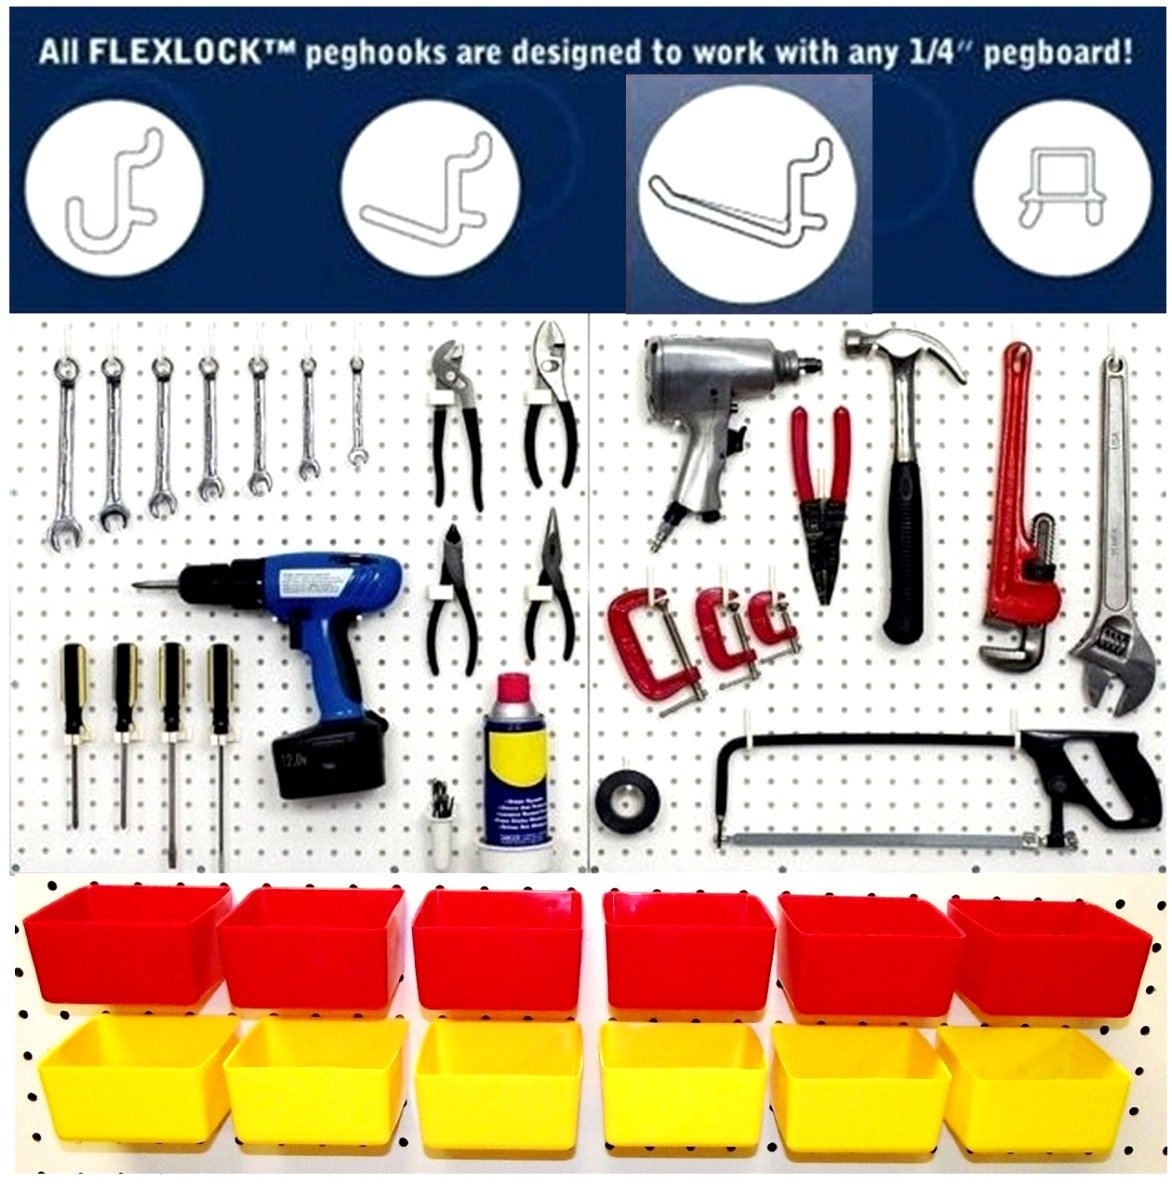 Wallpeg Craft & Tool Organizer Bins & Peg Hooks – 10 Red Bins and 80 Assorted Peg Hooks AM-90R 2 by WallPeg